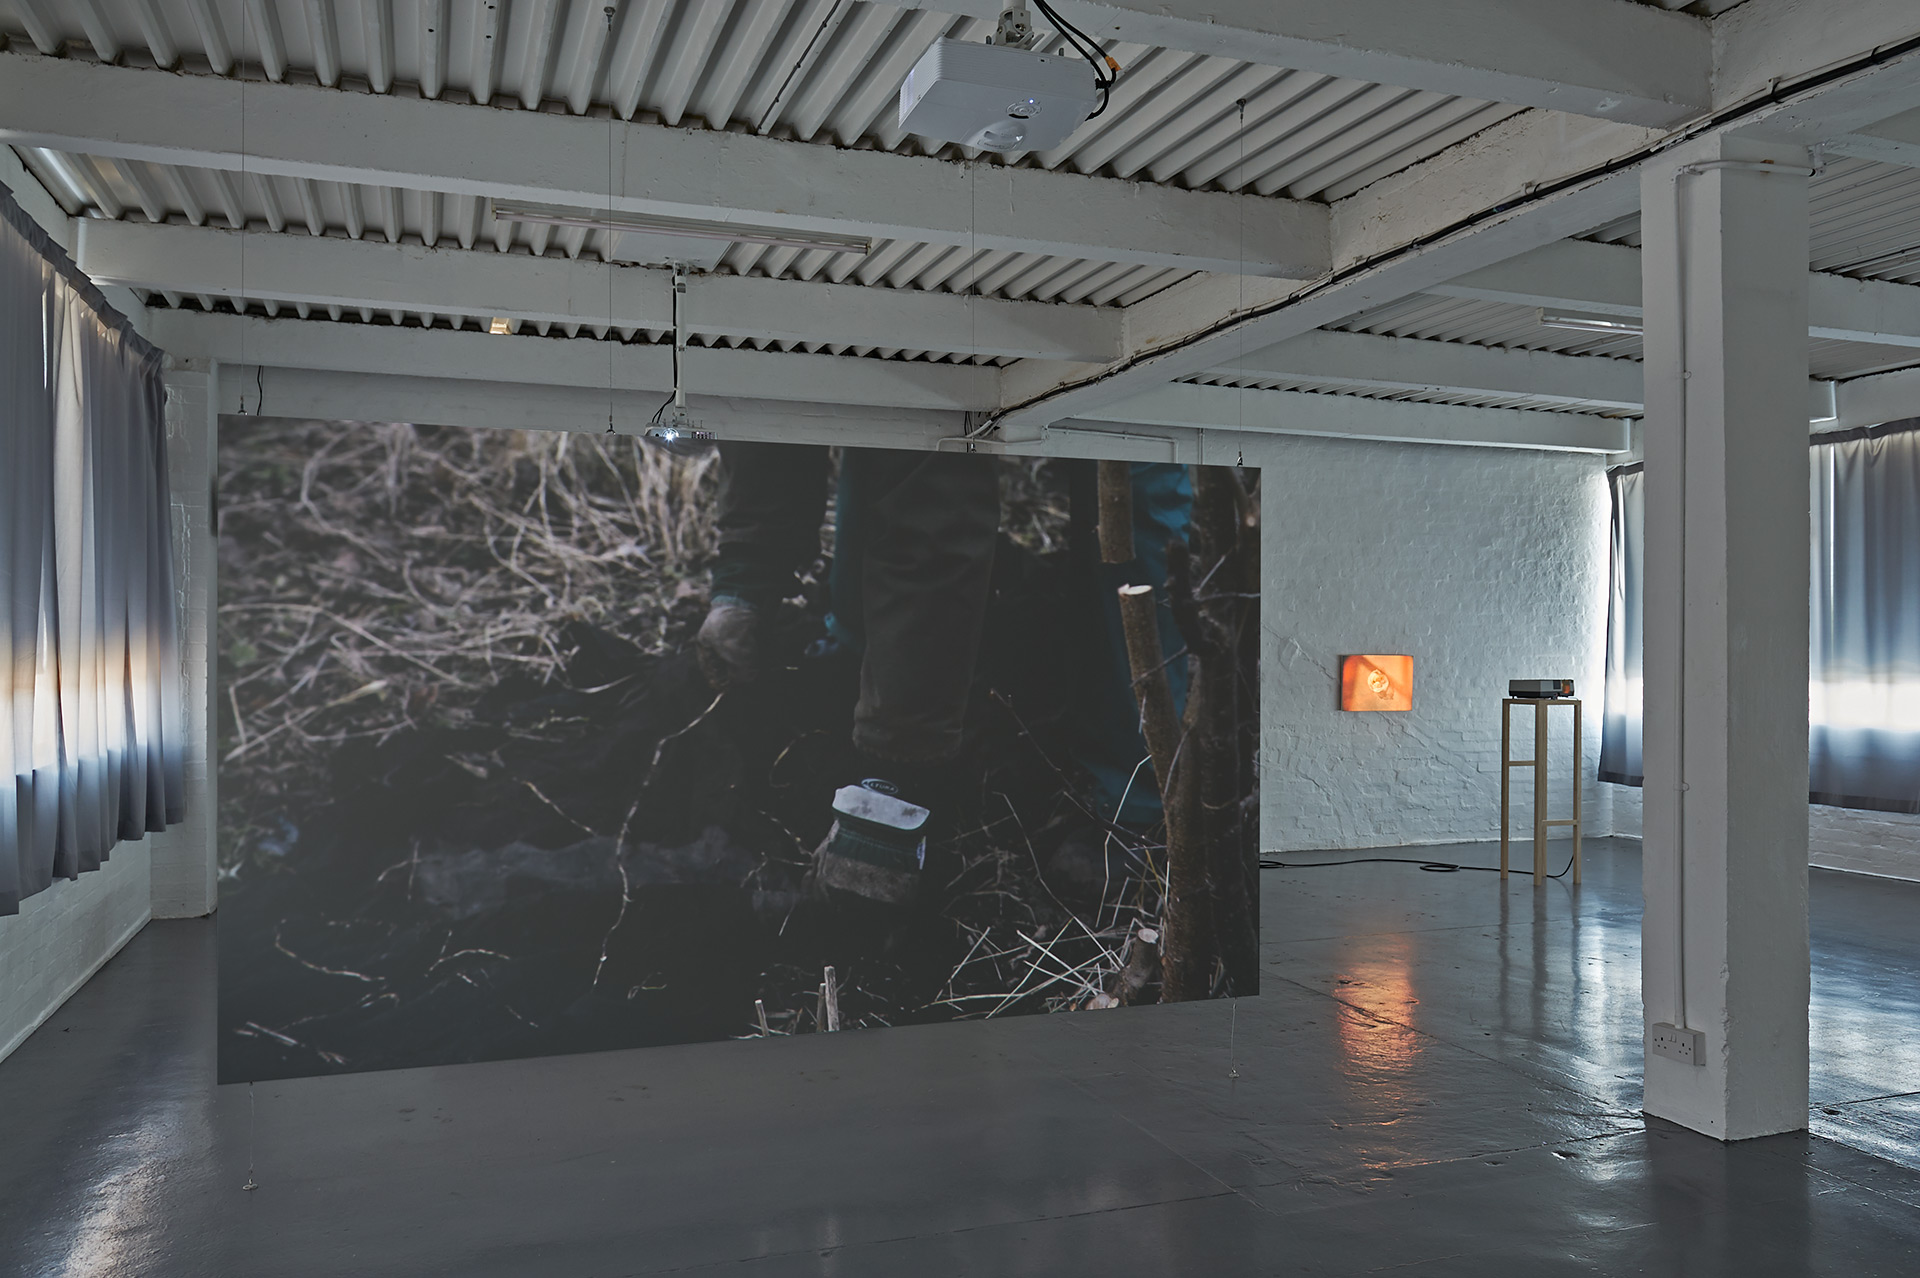 A custom made wooden projection screen hangs from the ceiling onto which a video is projected, in the background a slide projector sits on a custom made wooden plinth projecting a single image of a bag of fruit.